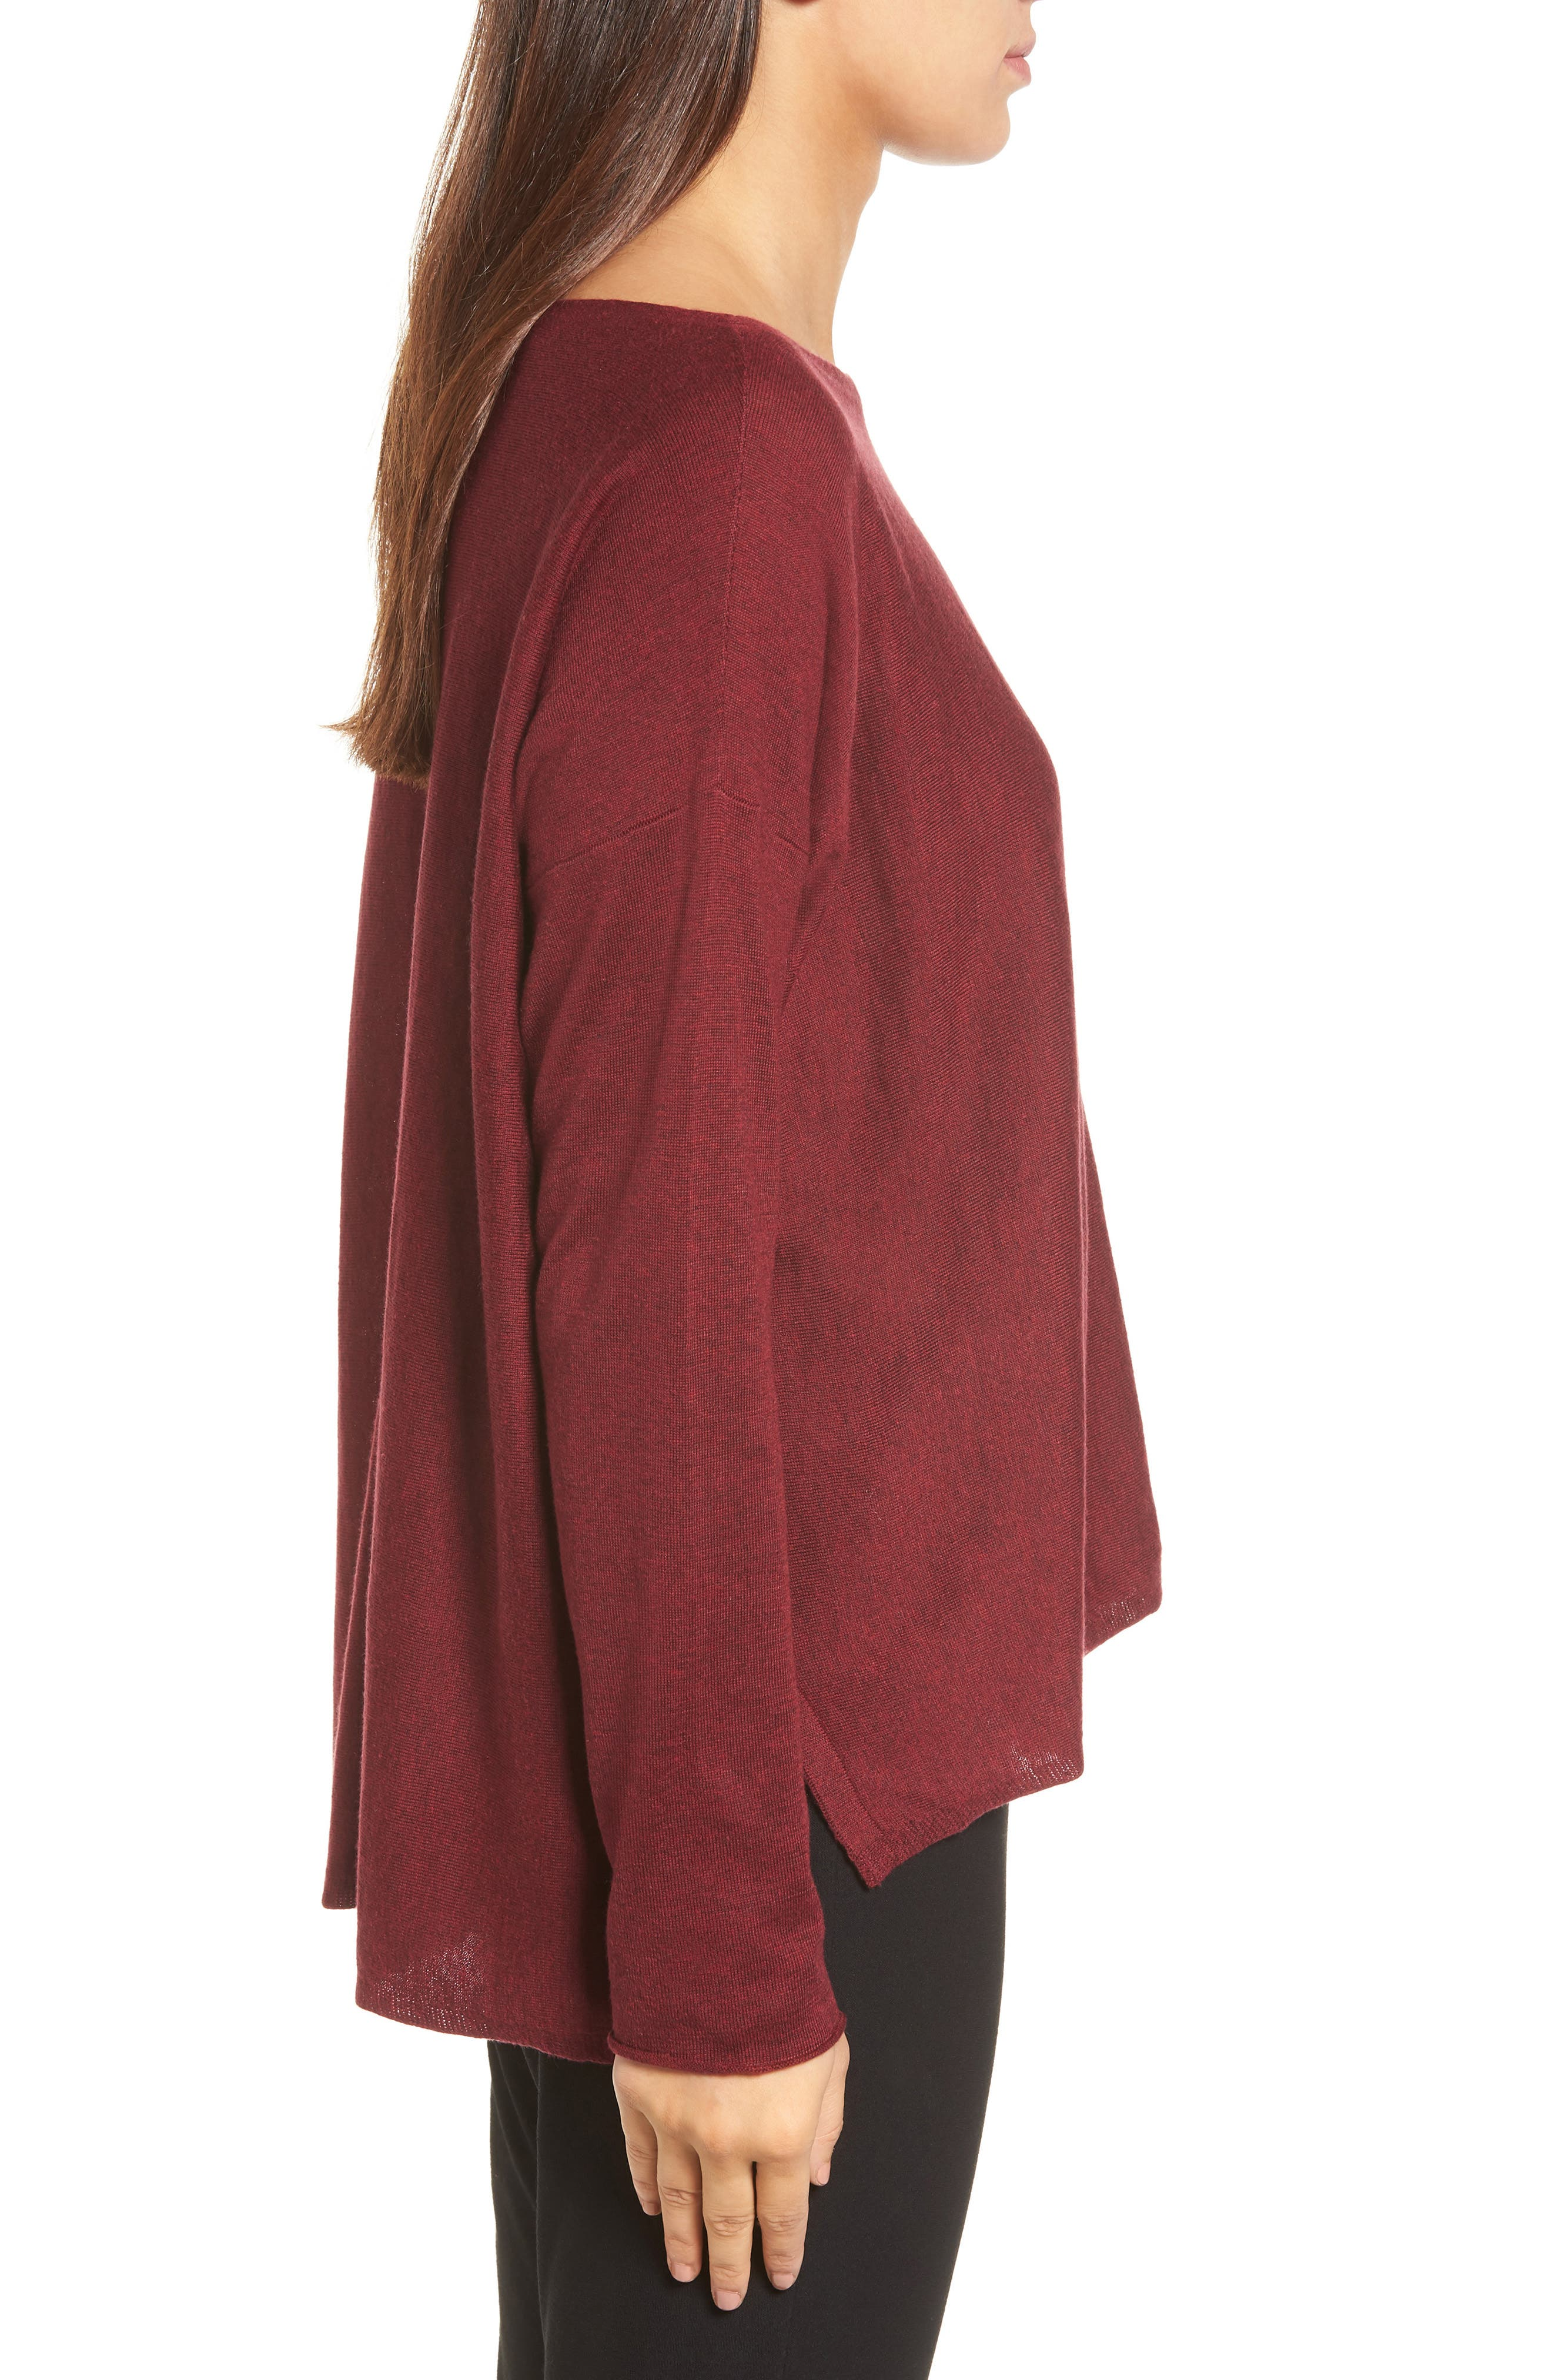 Tencel<sup>®</sup> Lyocell Blend High/Low Sweater,                             Alternate thumbnail 3, color,                             Claret